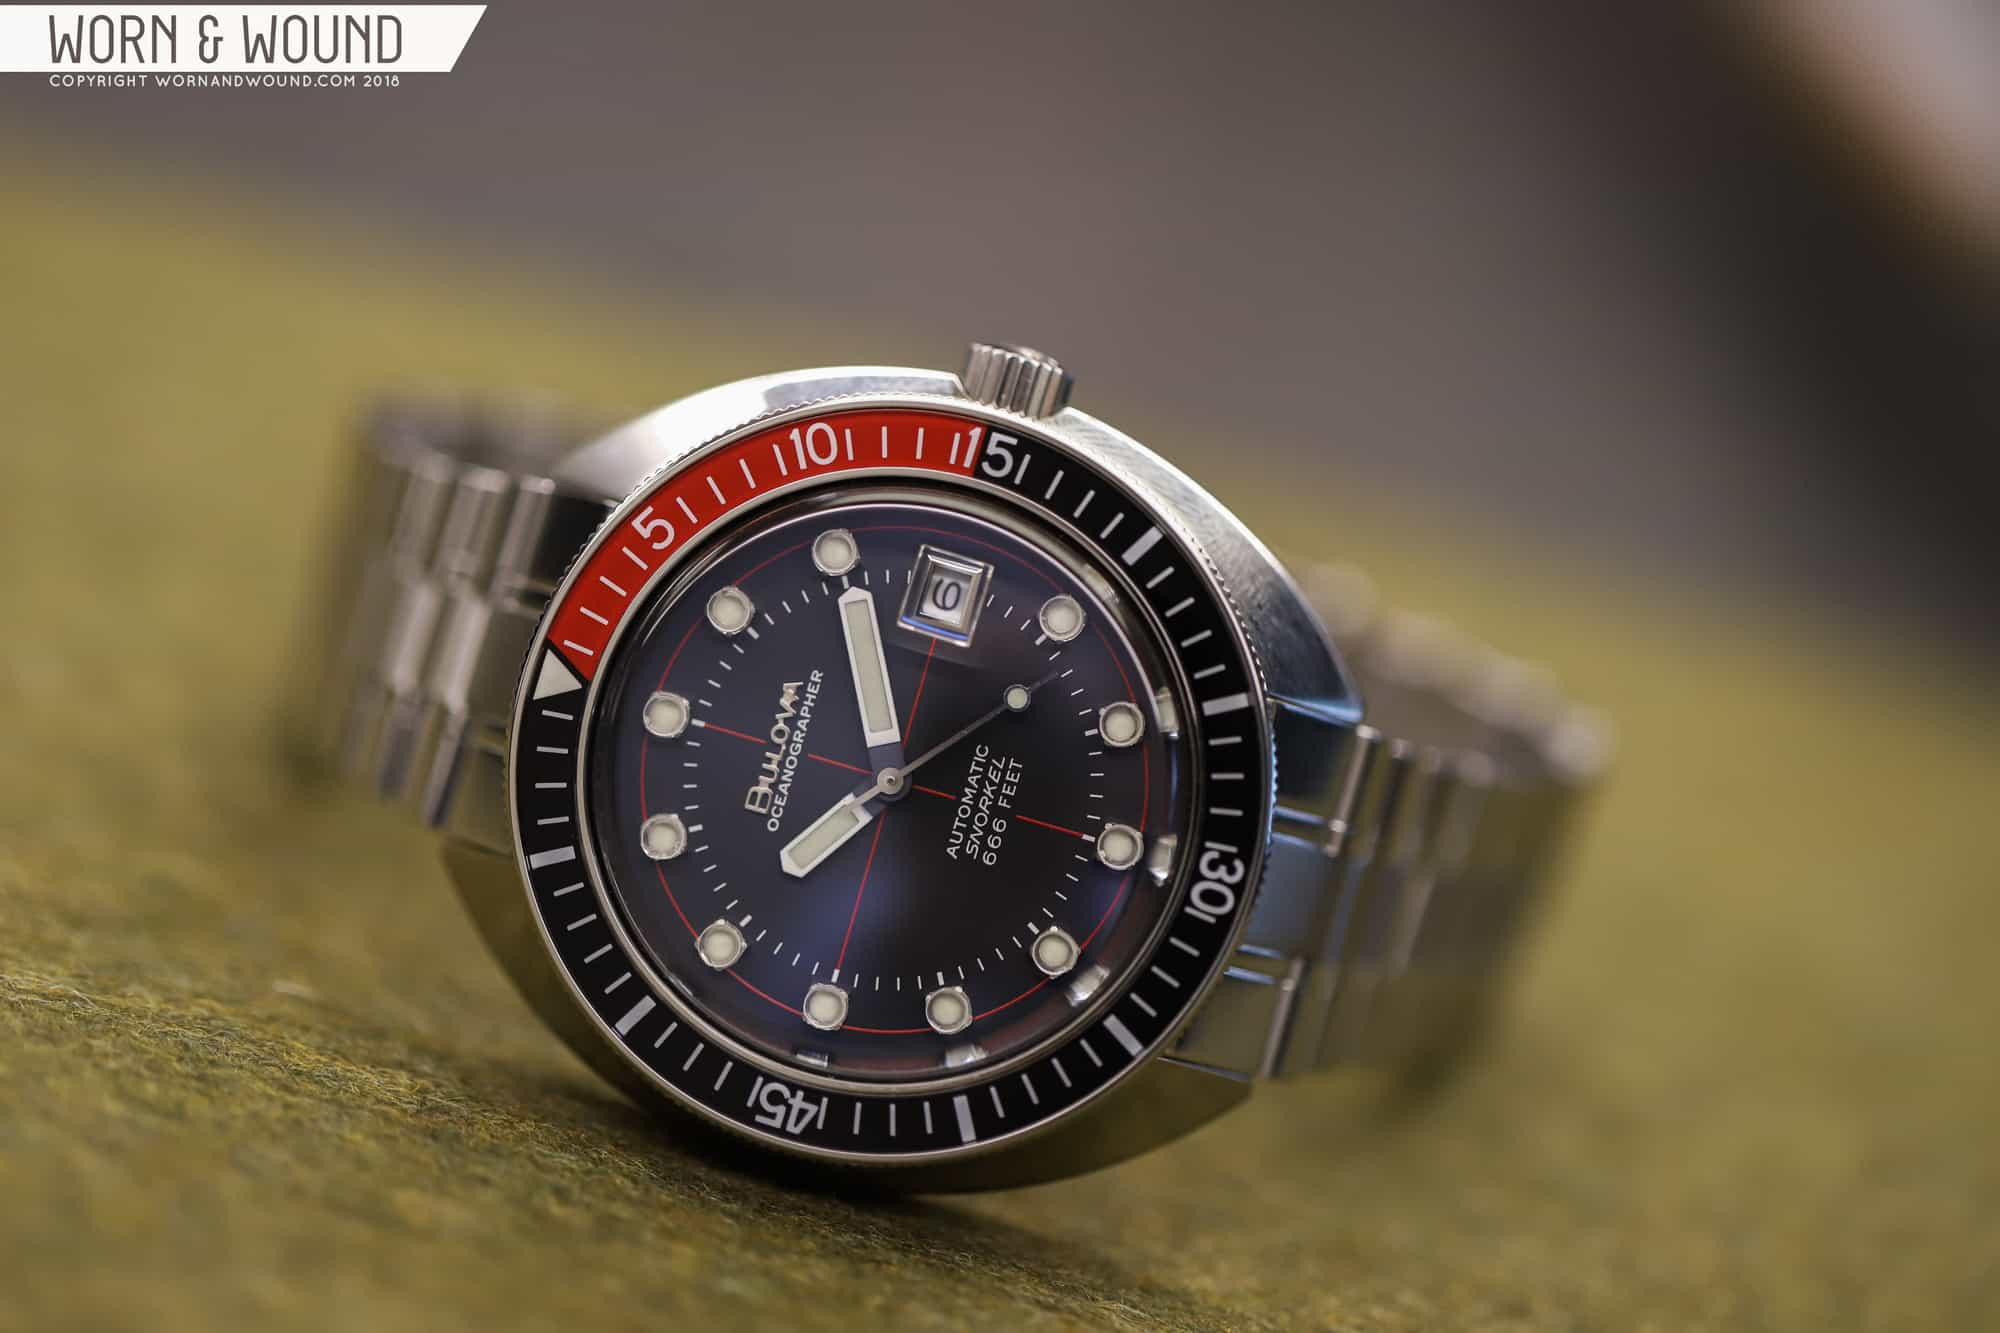 First Look: Bulova Archive Series Oceanographer Devil Diver and Oceanographer Devil Diver Limited Edition